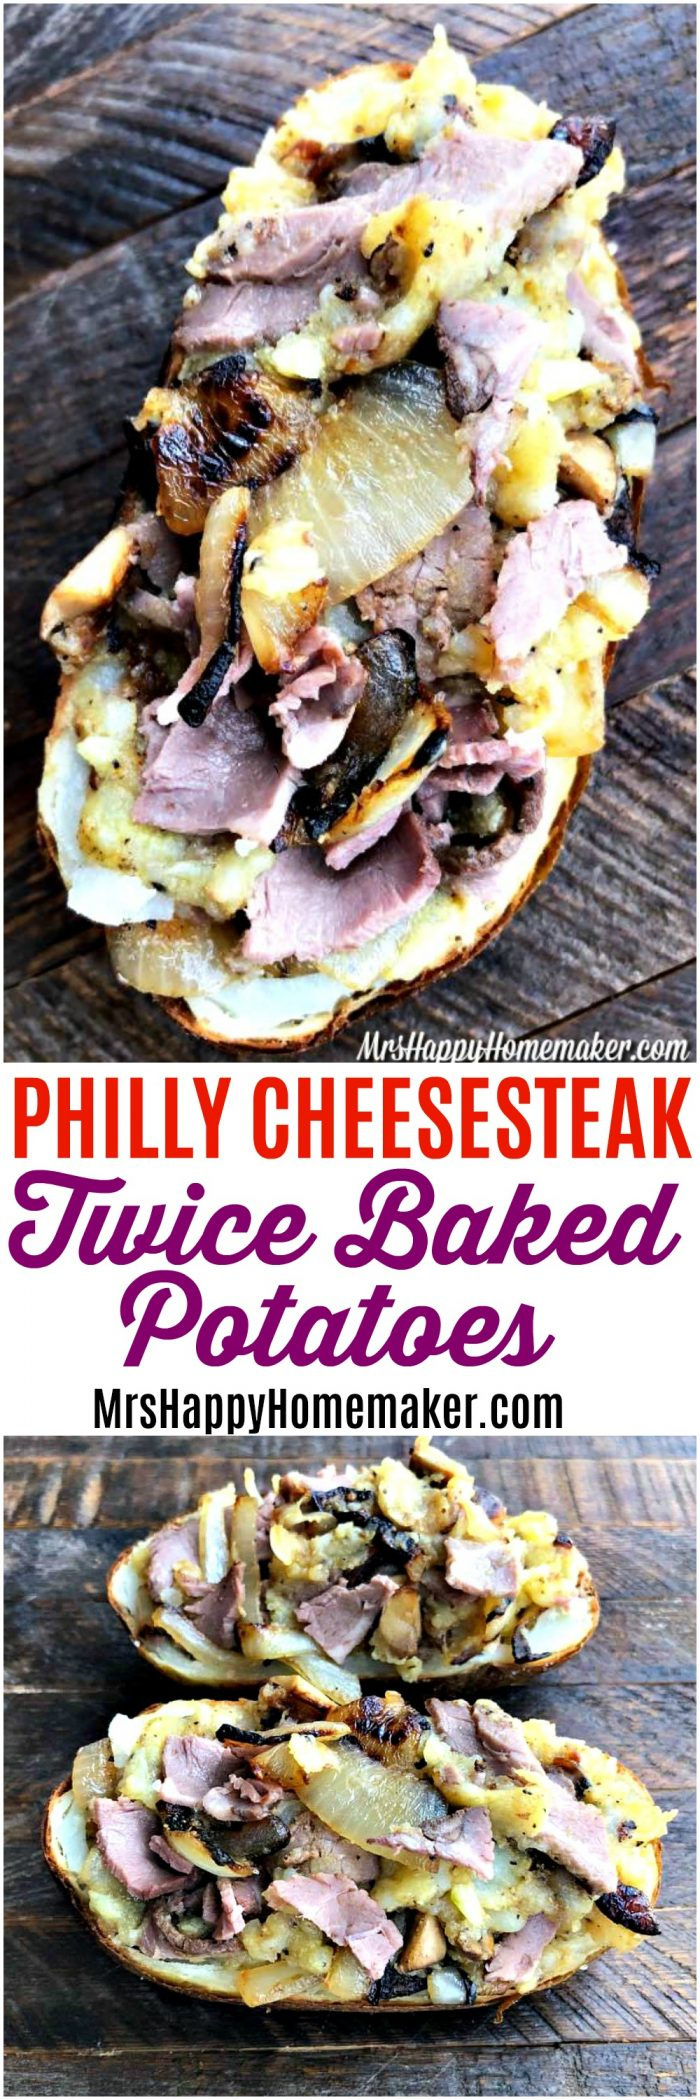 Philly Cheesesteak Twice Baked Potatoes